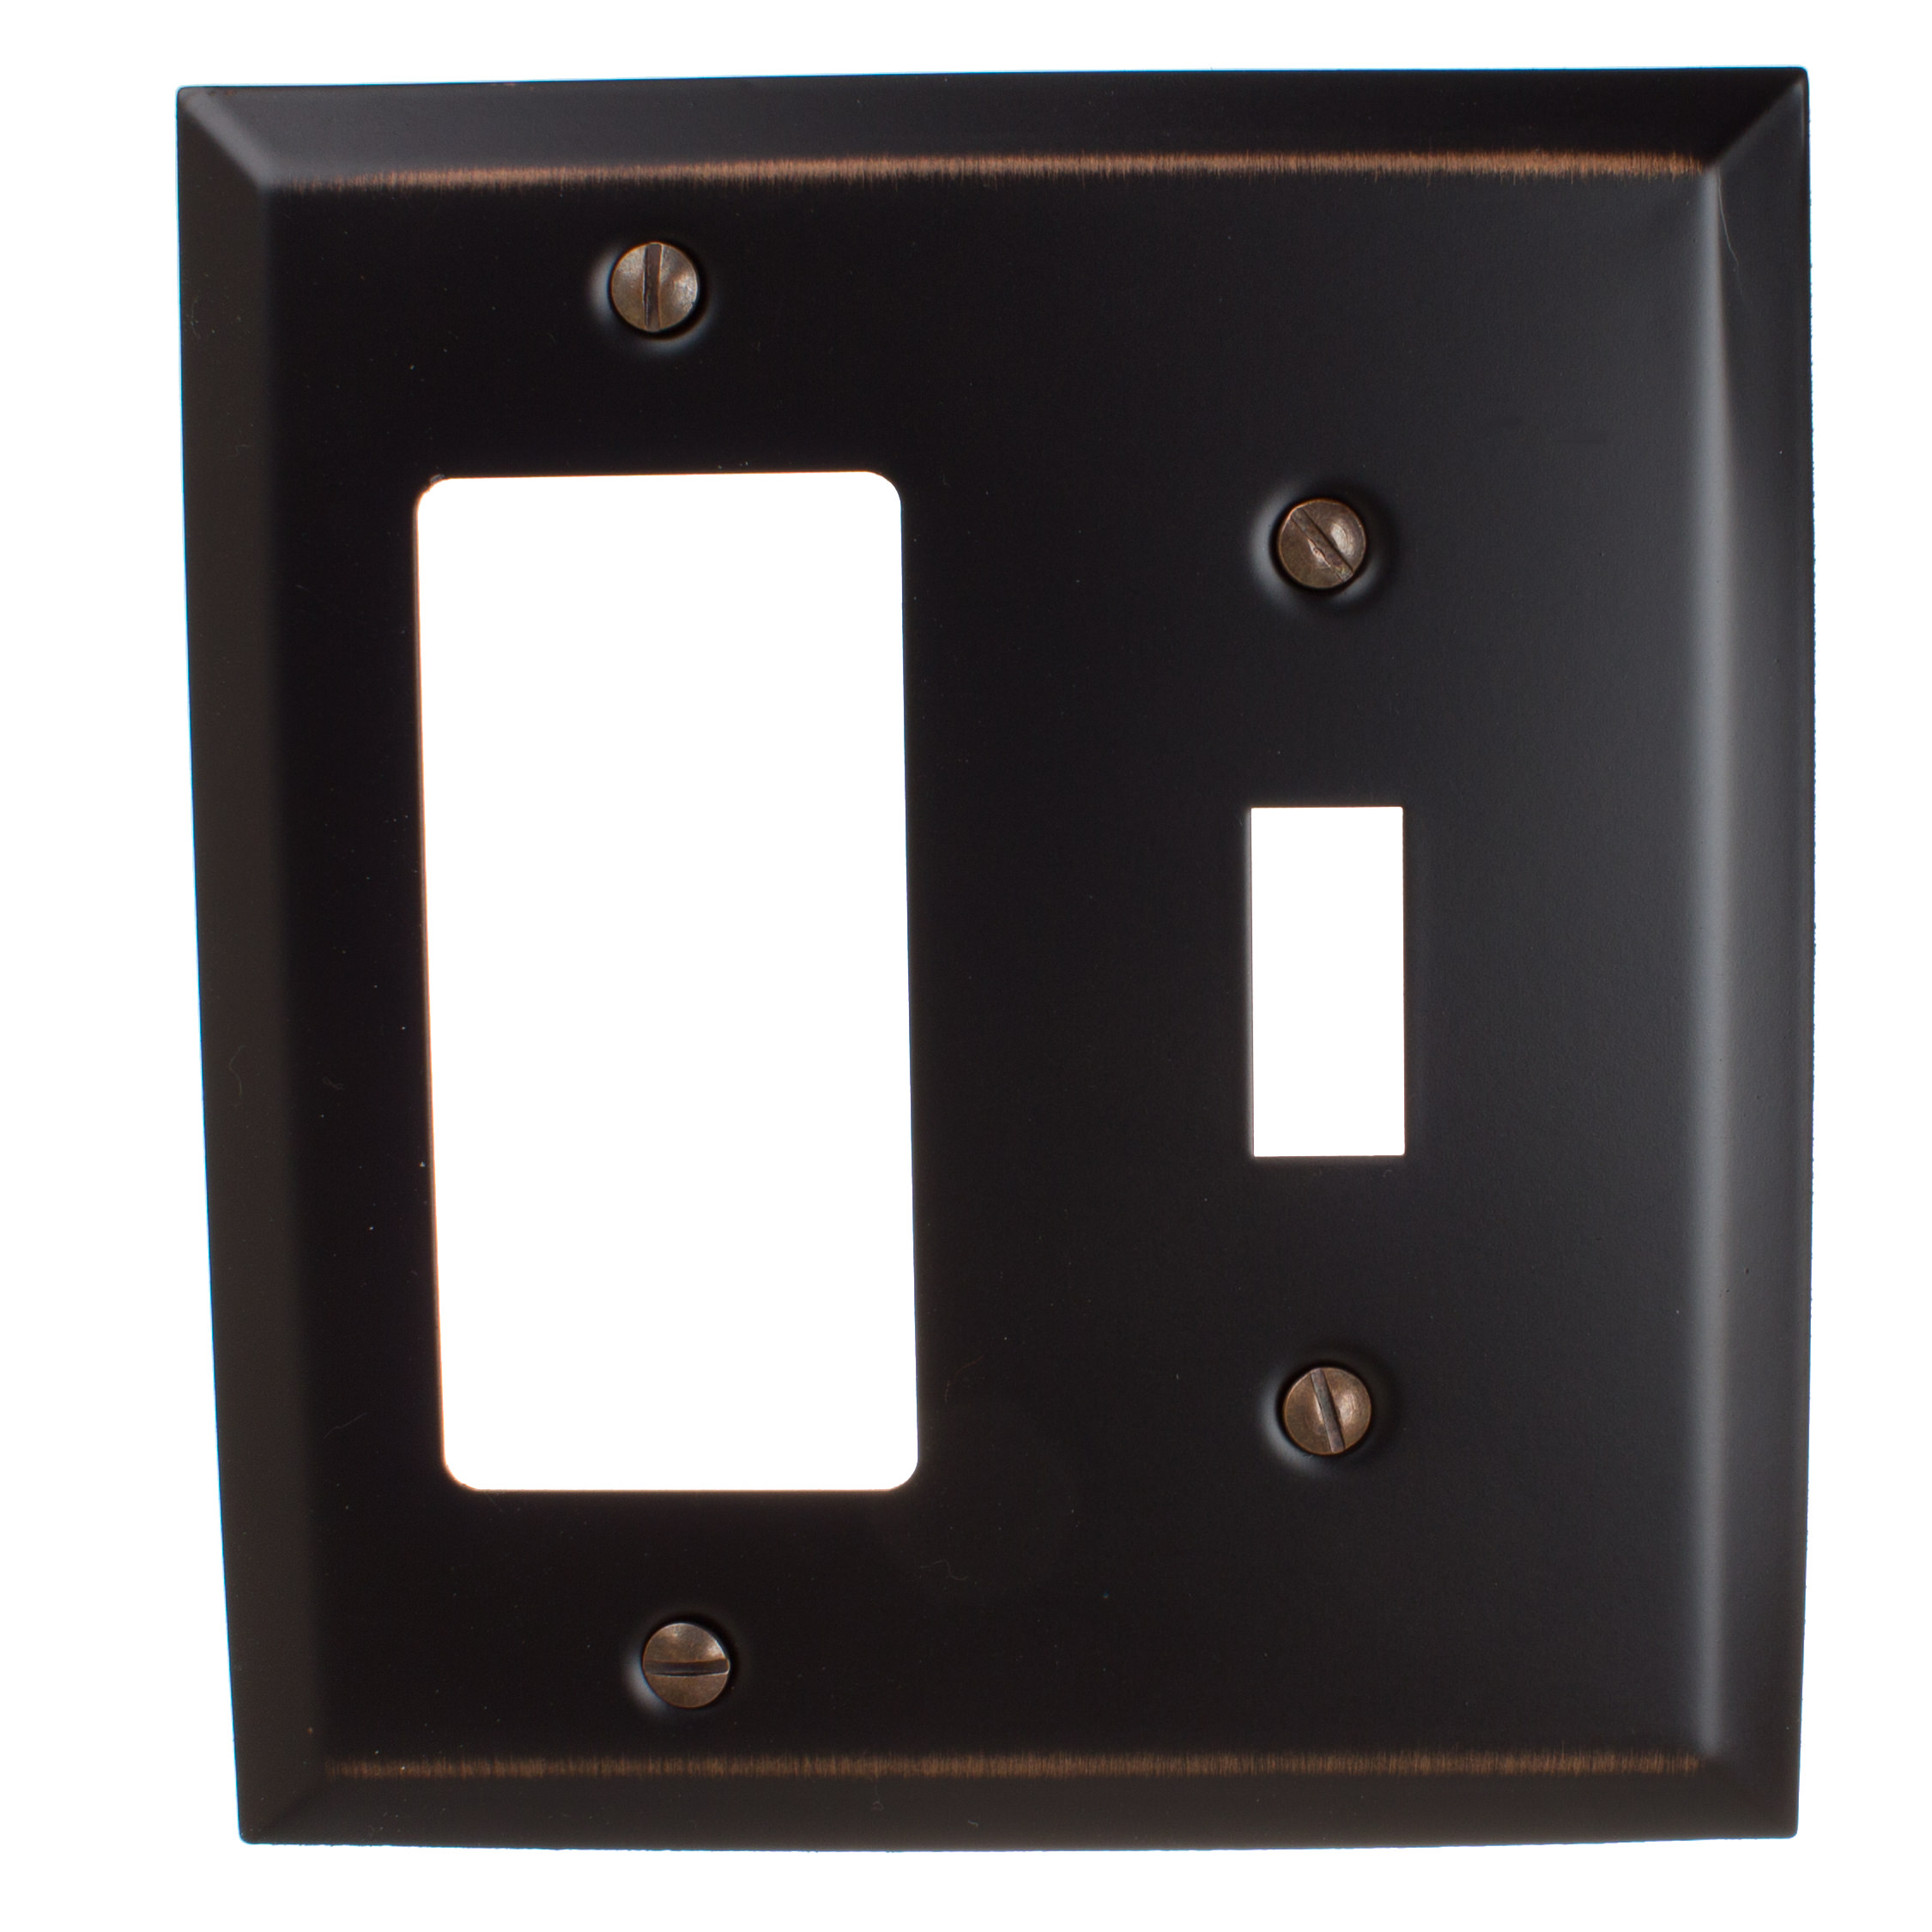 GlideRite Hardware Toggle Light Switch and Decora Rocker Beveled Wall Plate Cover, Brushed Nickel